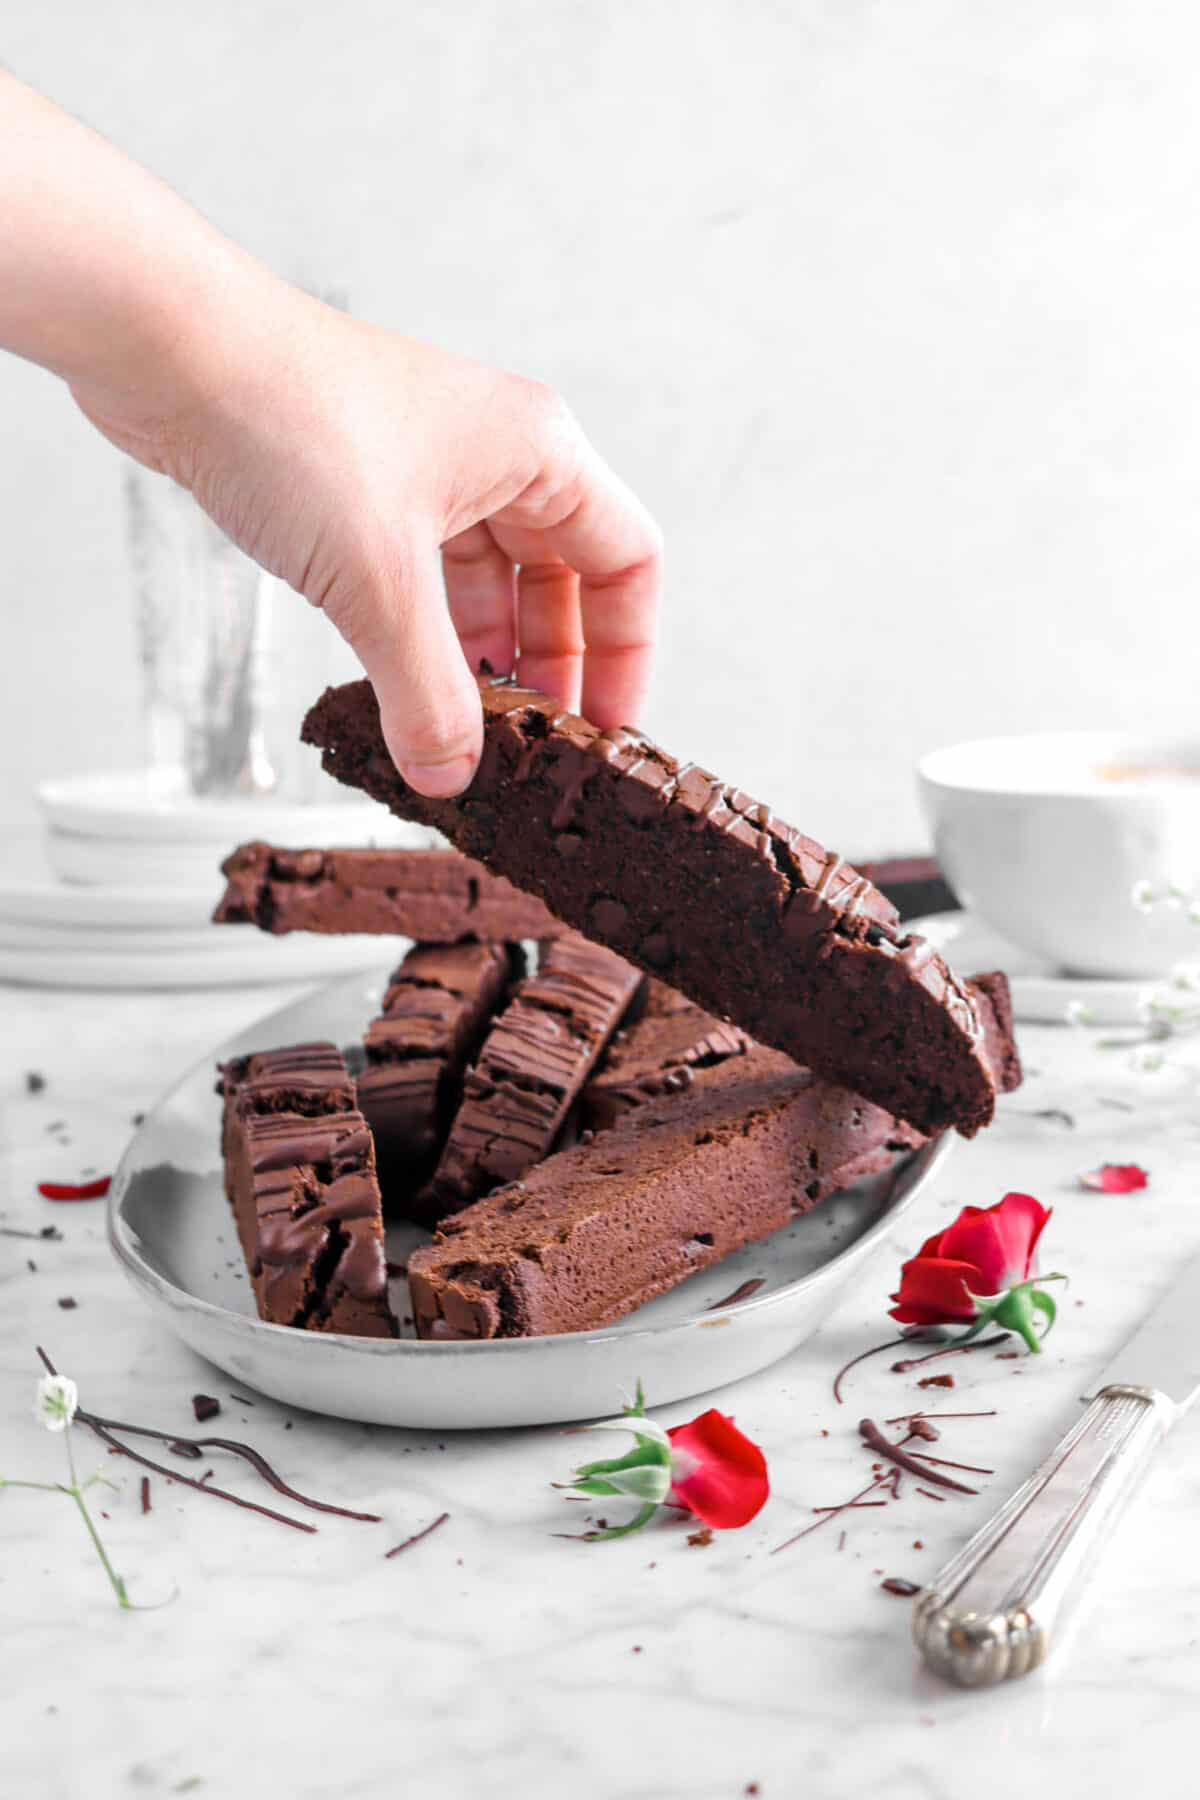 hand grabbing biscotti from serving plate with roses